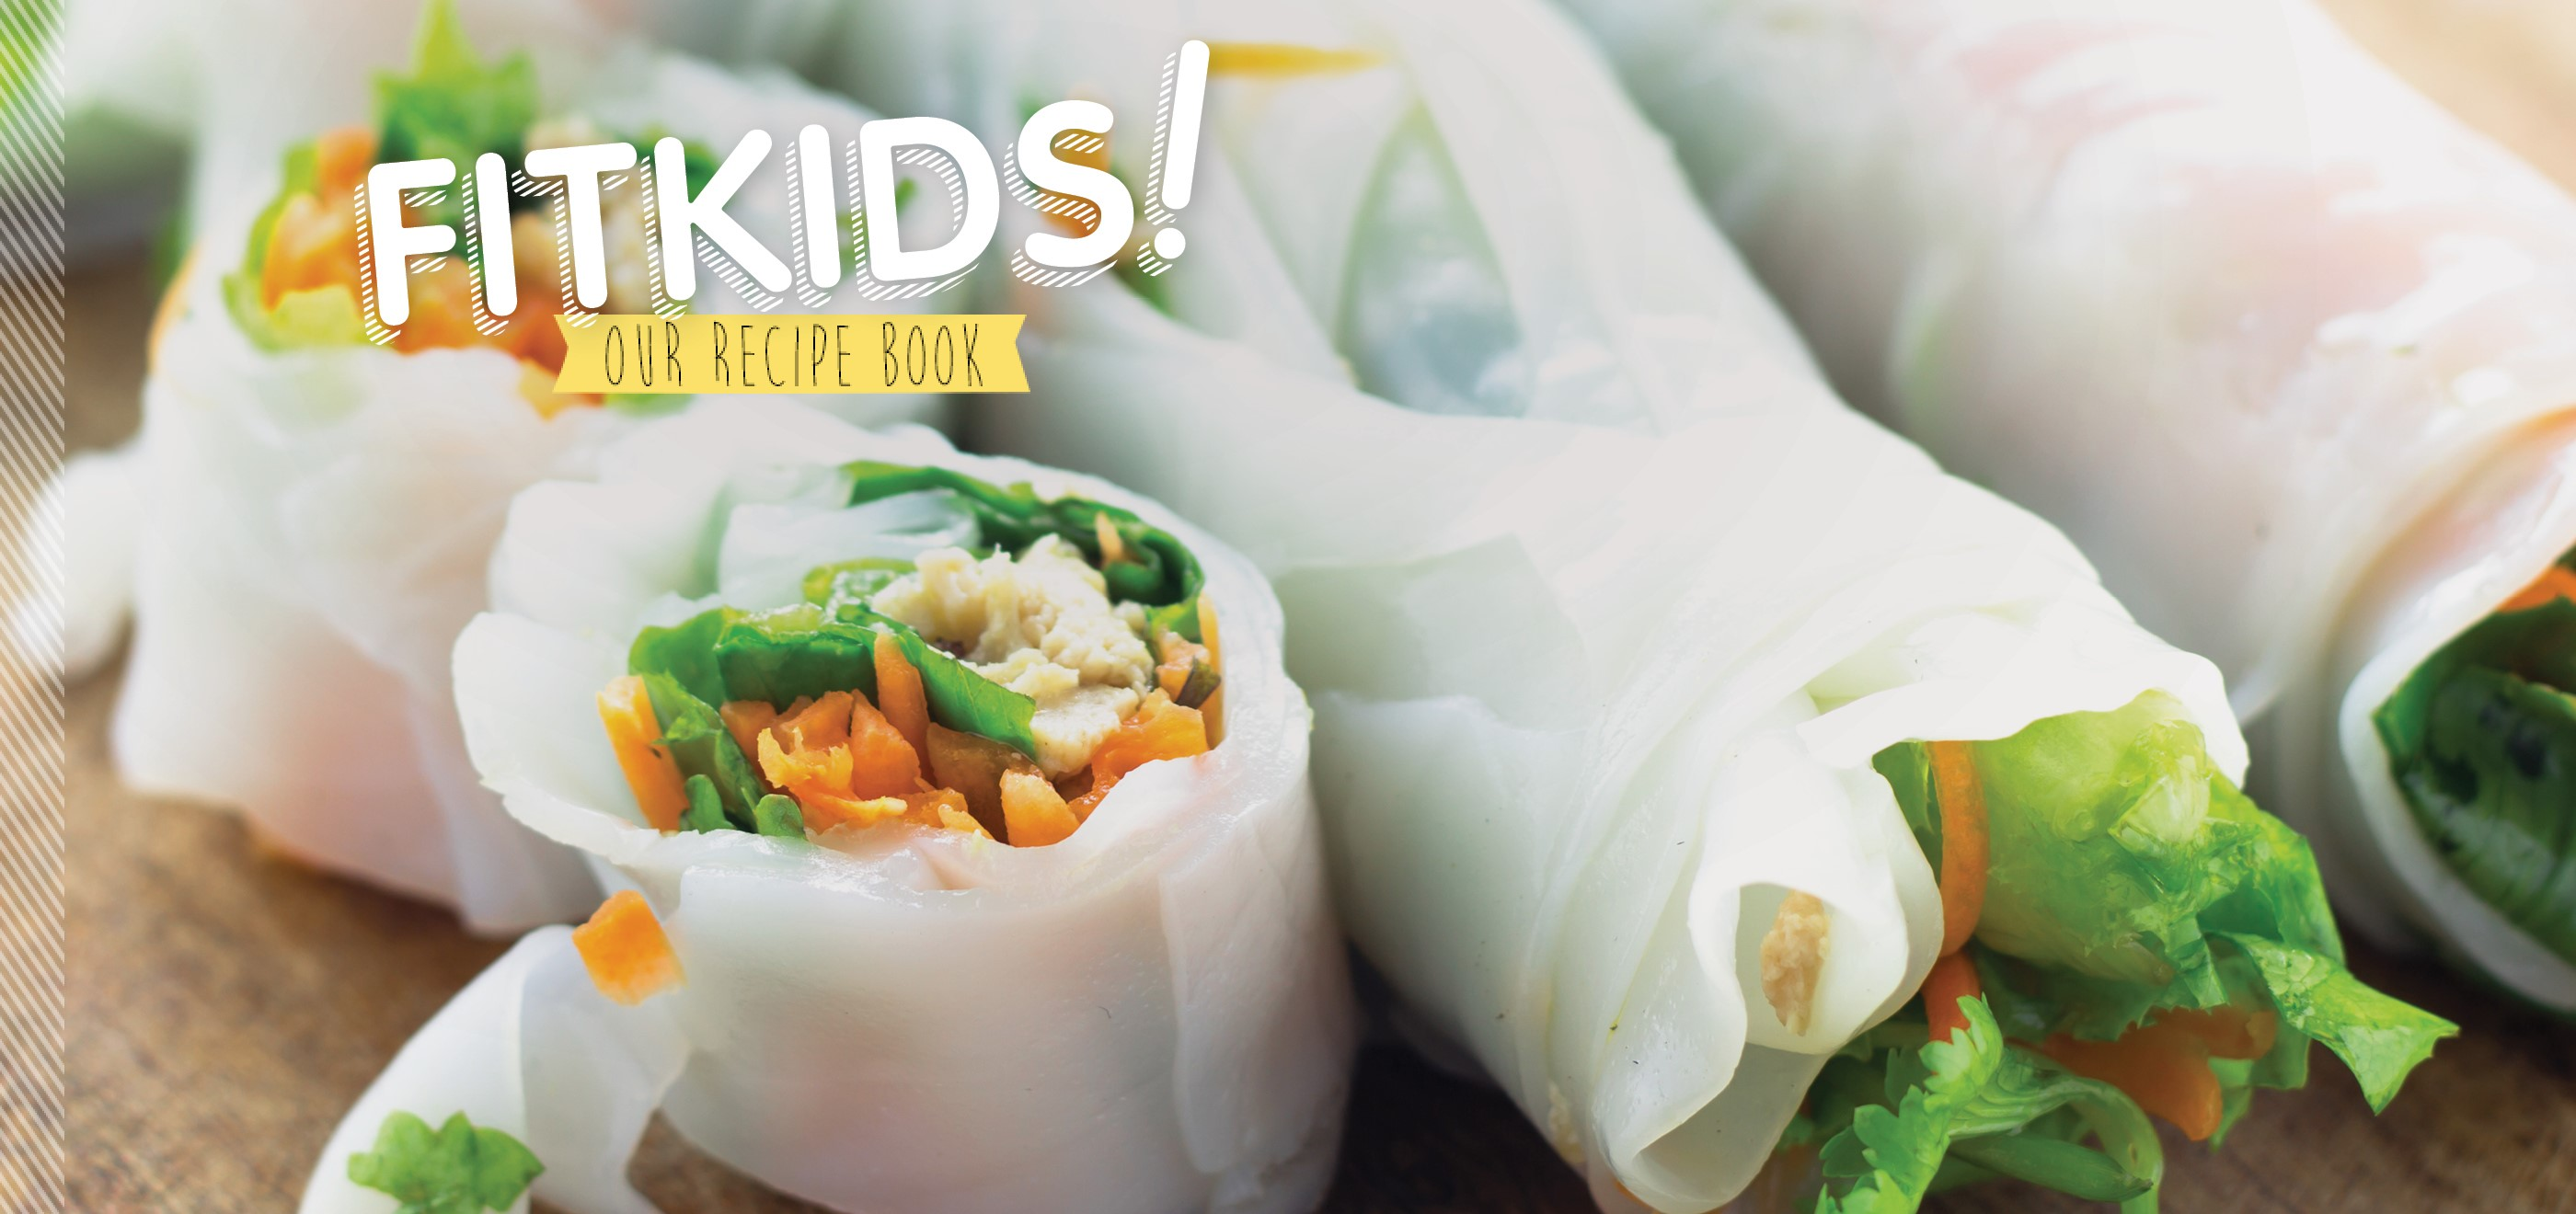 201806 Fitkids recipe website image